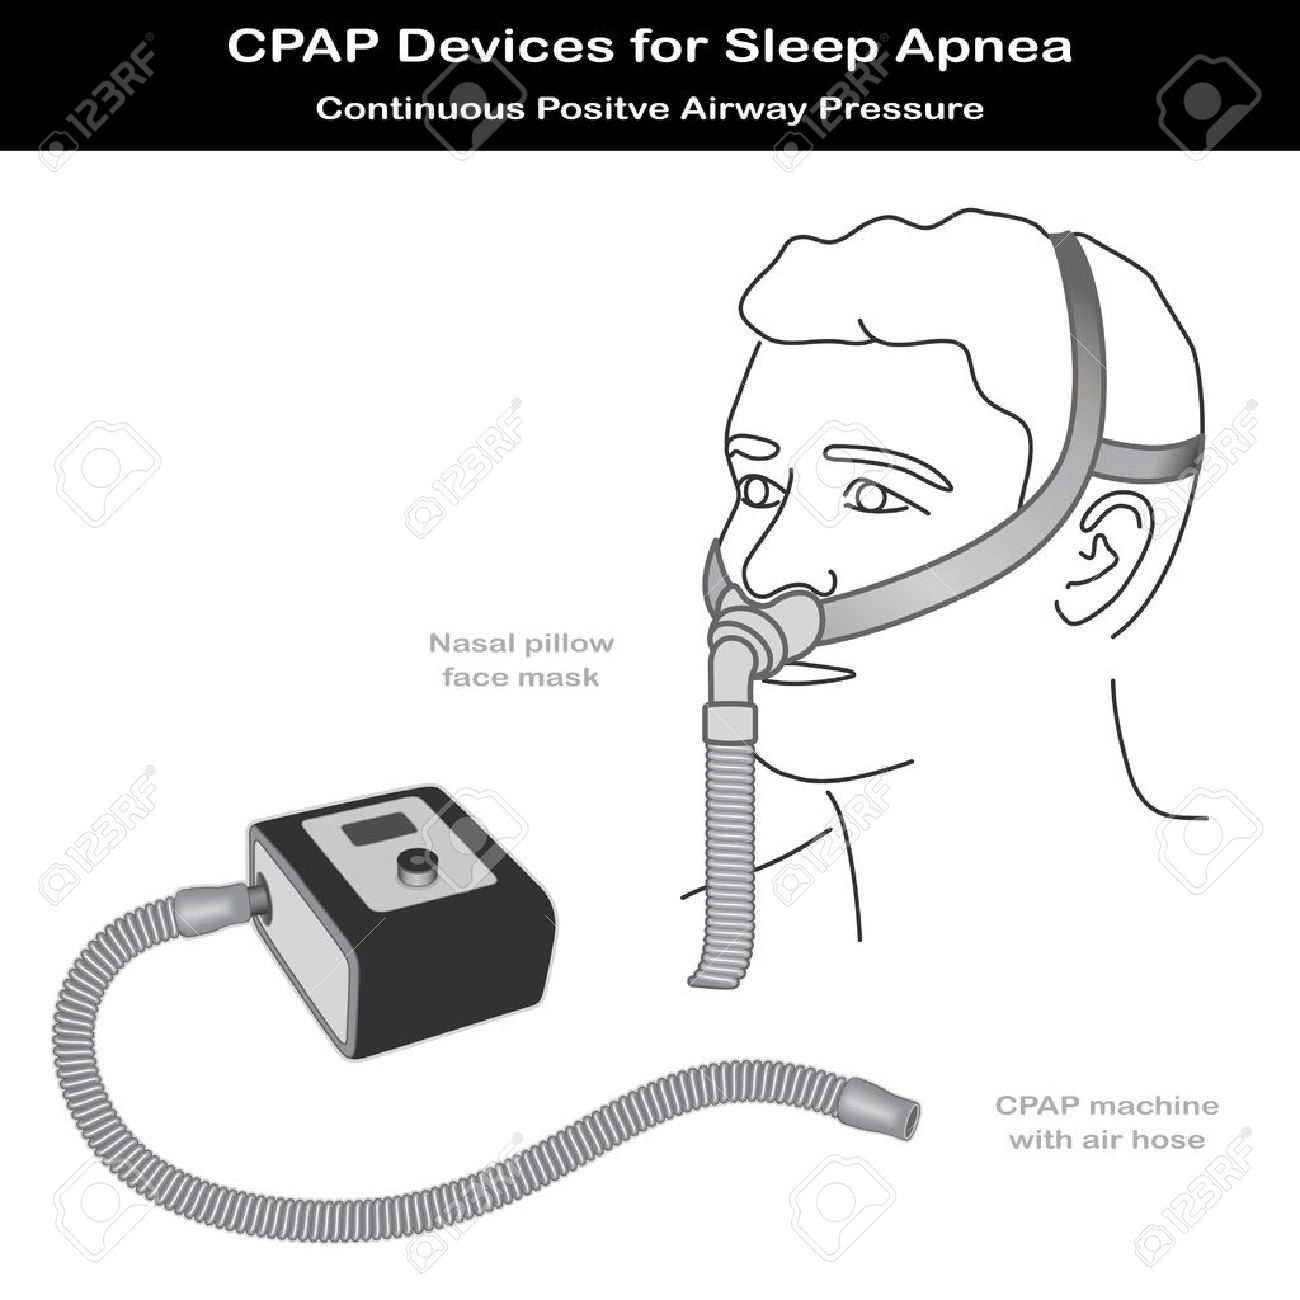 Cpap Machine With Air Hose, Nose Pillow Face Mask On Model